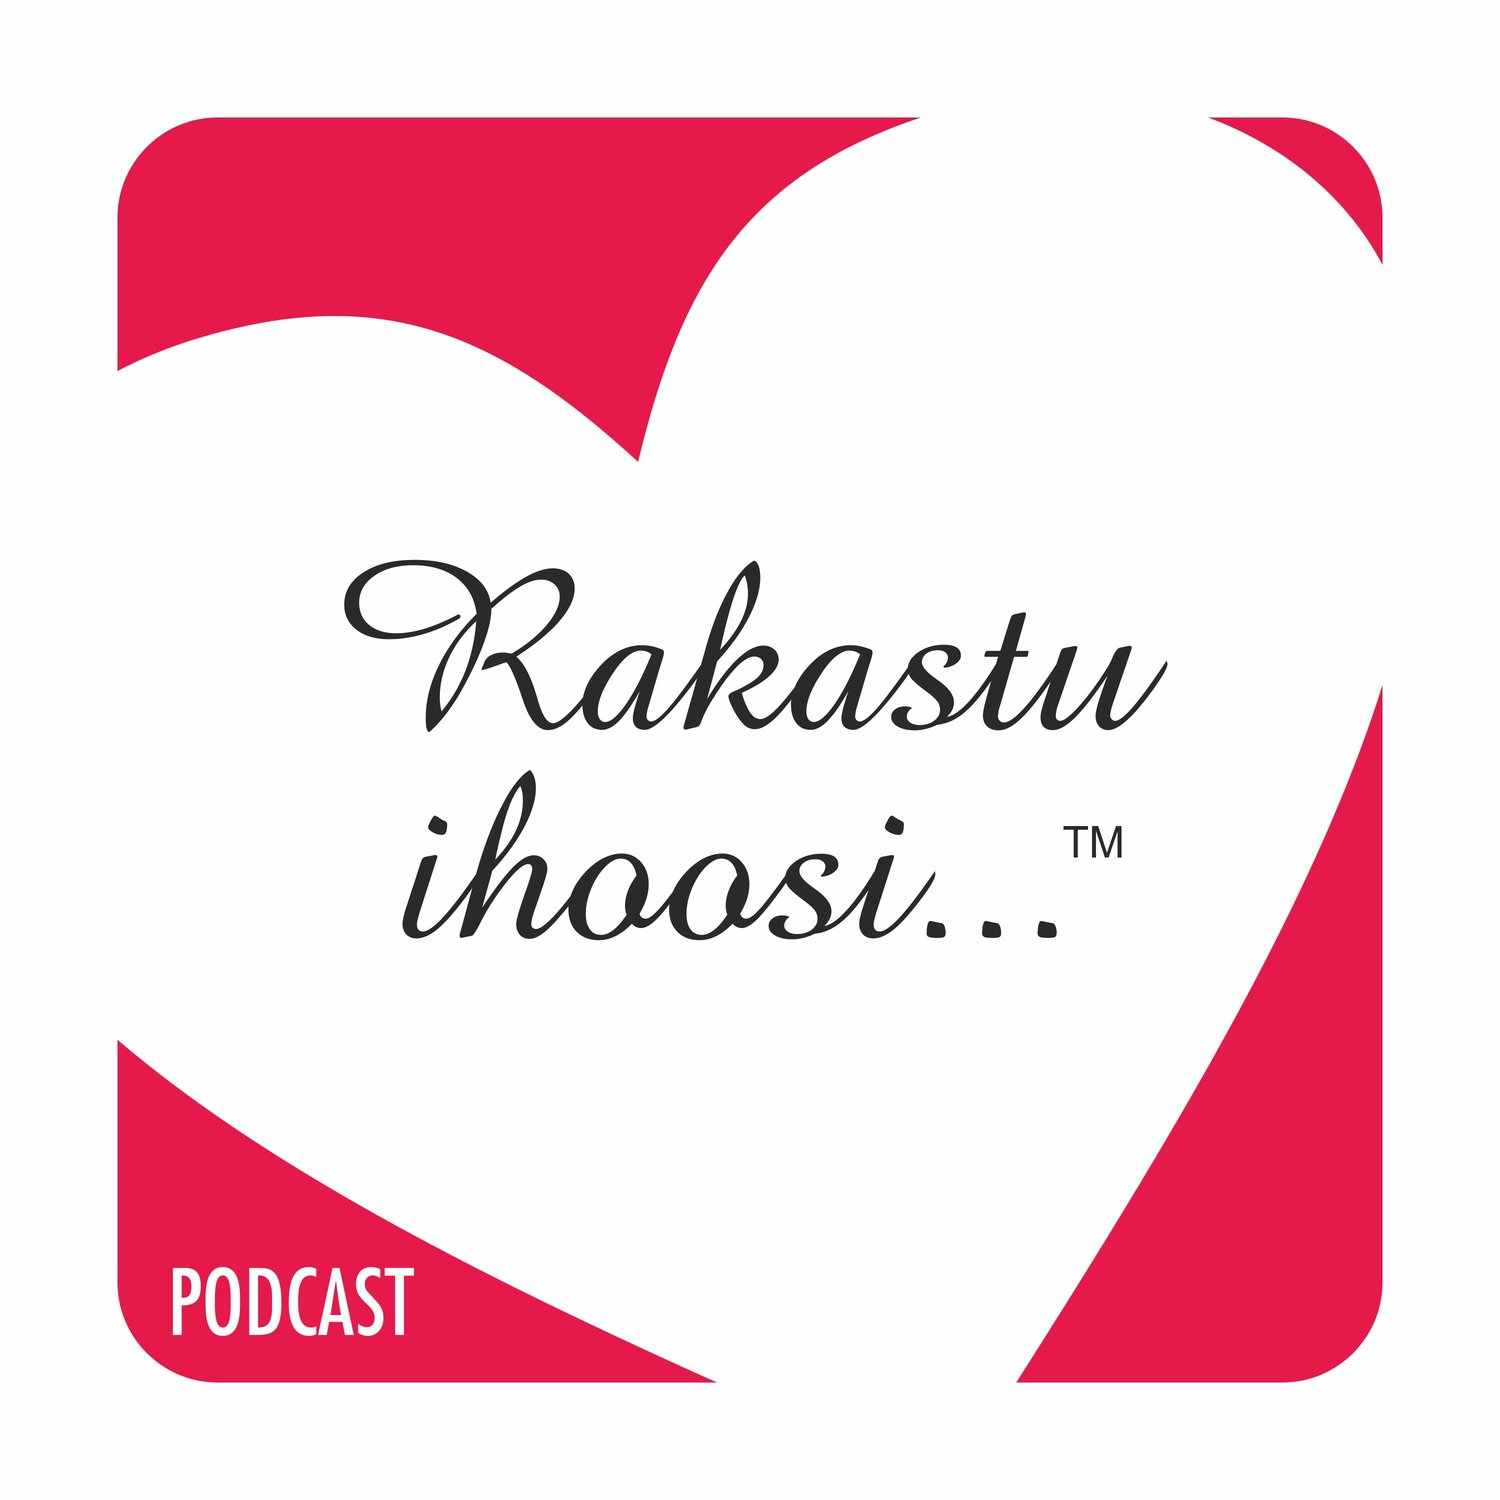 Rakastu Ihoosi...™ Podcast